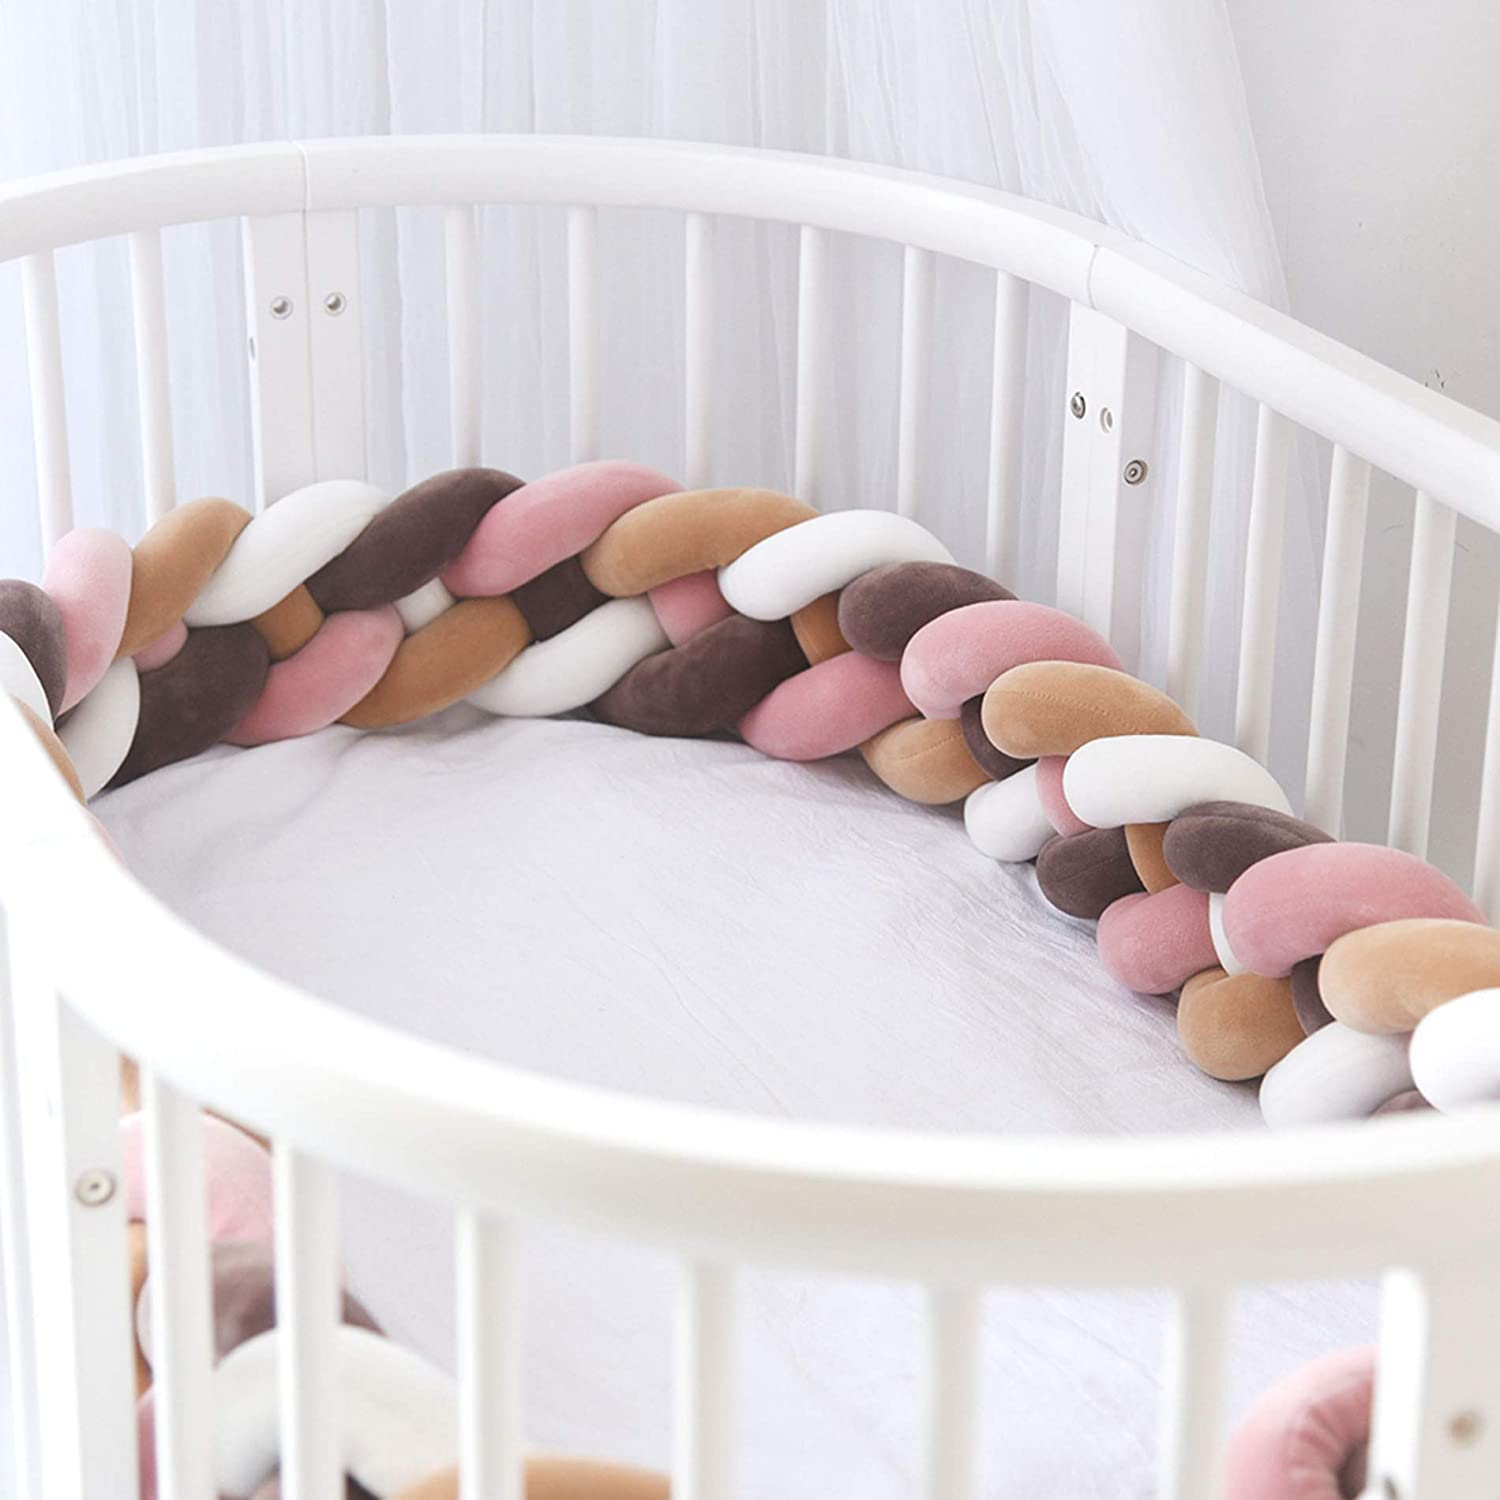 Nursery Cradle Bed Safety Rail Padding Cot Sleep Bumper LCYCN Baby Heighten Crib Bumper Pads Knotted Braided Ball Pillow Kids Room Decoration,C